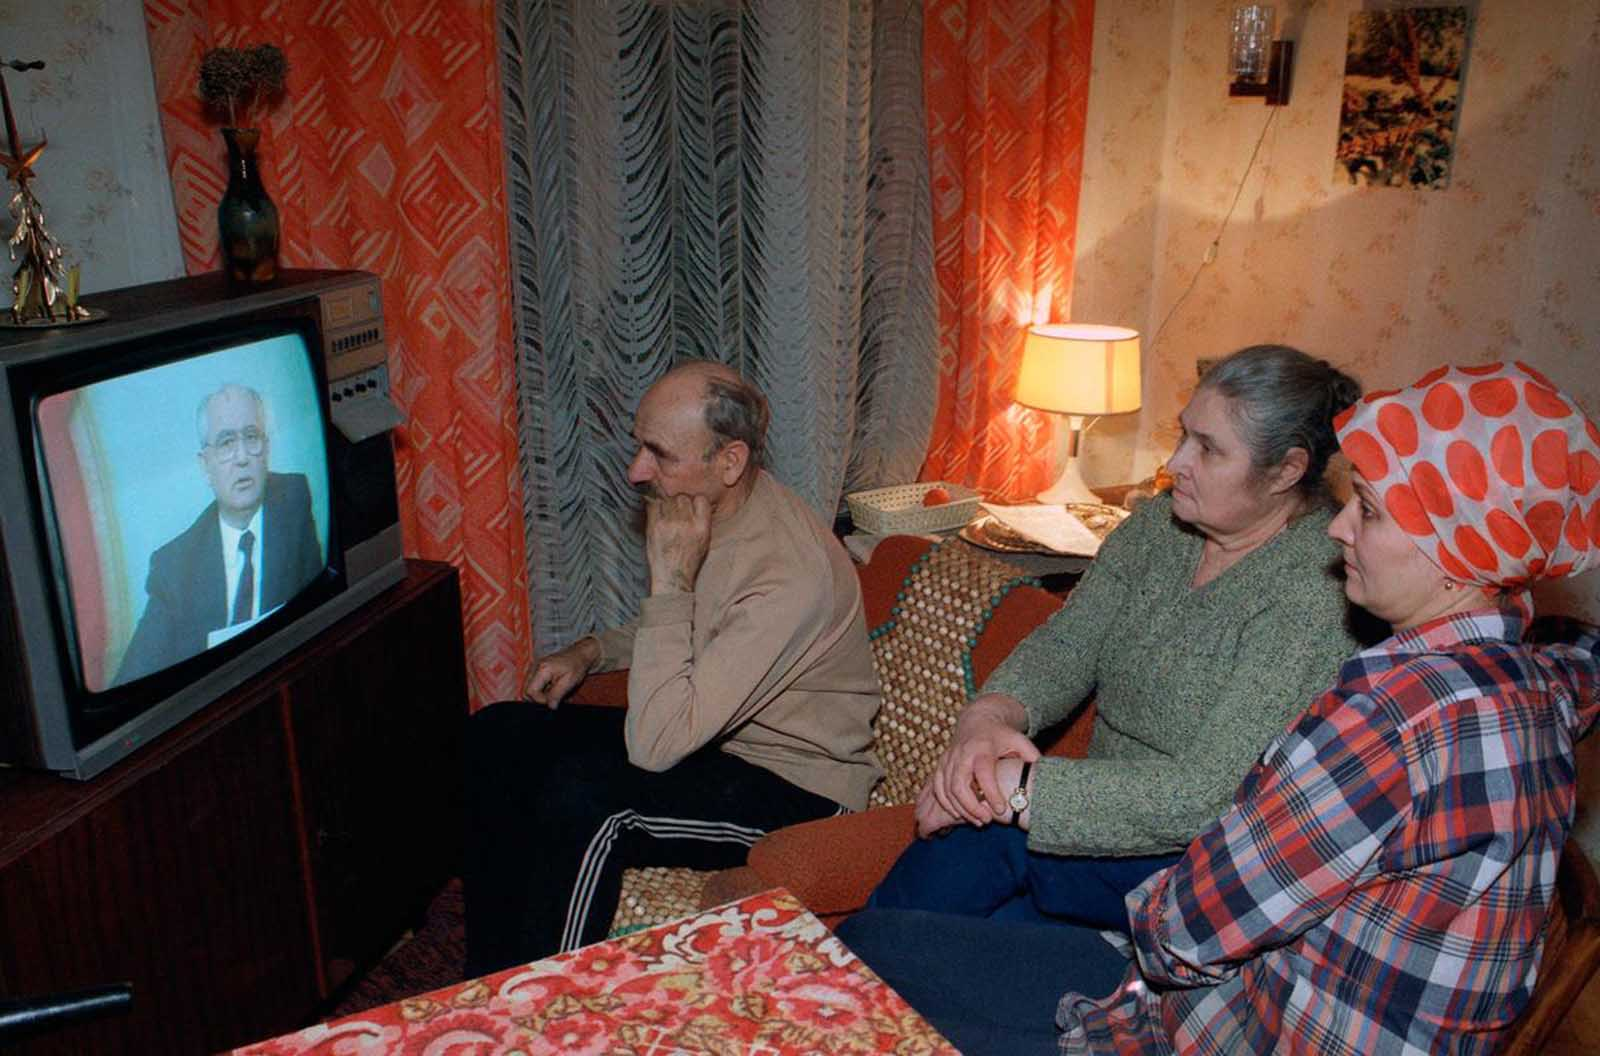 A family watches Soviet President Mikhail Gorbachev's resignation speech on TV in their downtown Moscow apartment, on December 25, 1991. This marked the end of the Soviet Union. Image:    Rare Historical Photos